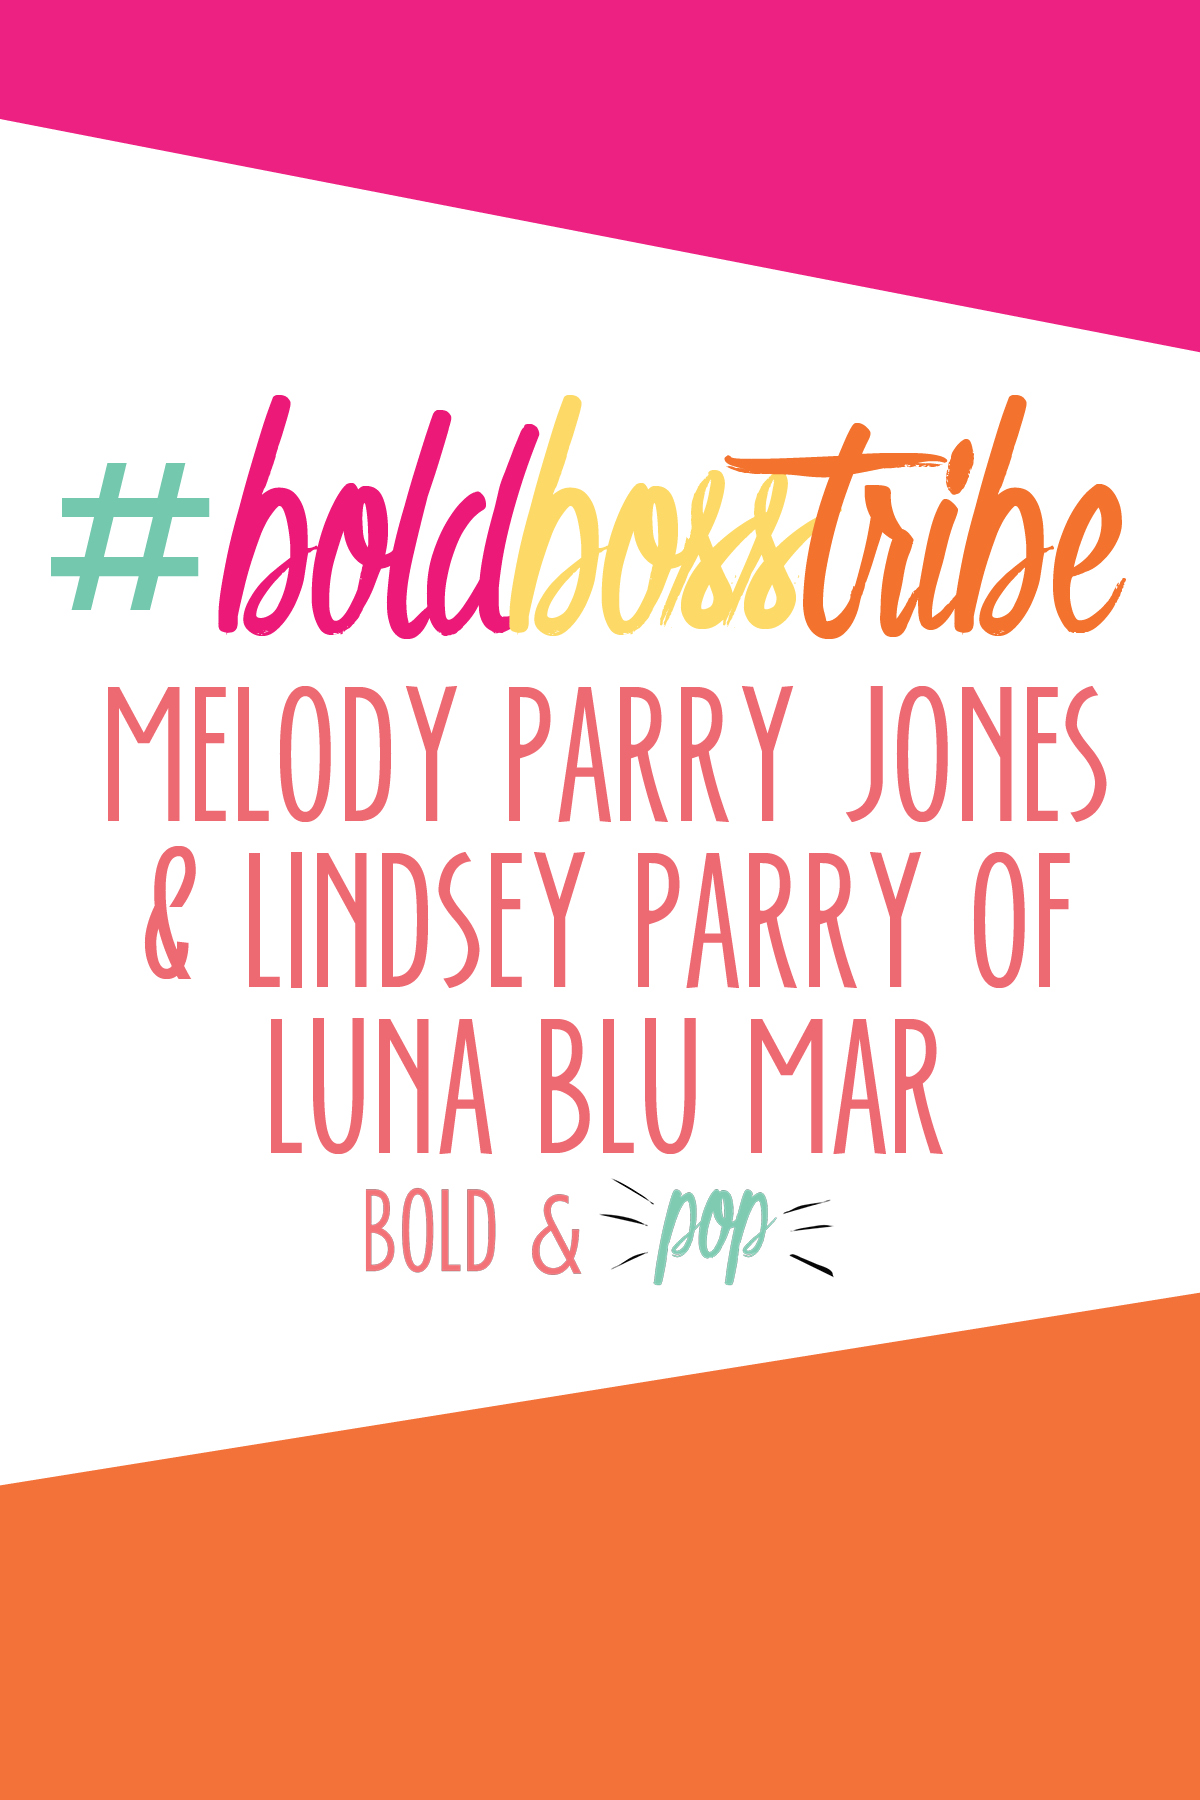 Bold & Pop :: #BoldBossTribe Feature with #BoldBossTribe :: Melody Parry Jones and Lindsey Parry of Luna Blu Mar